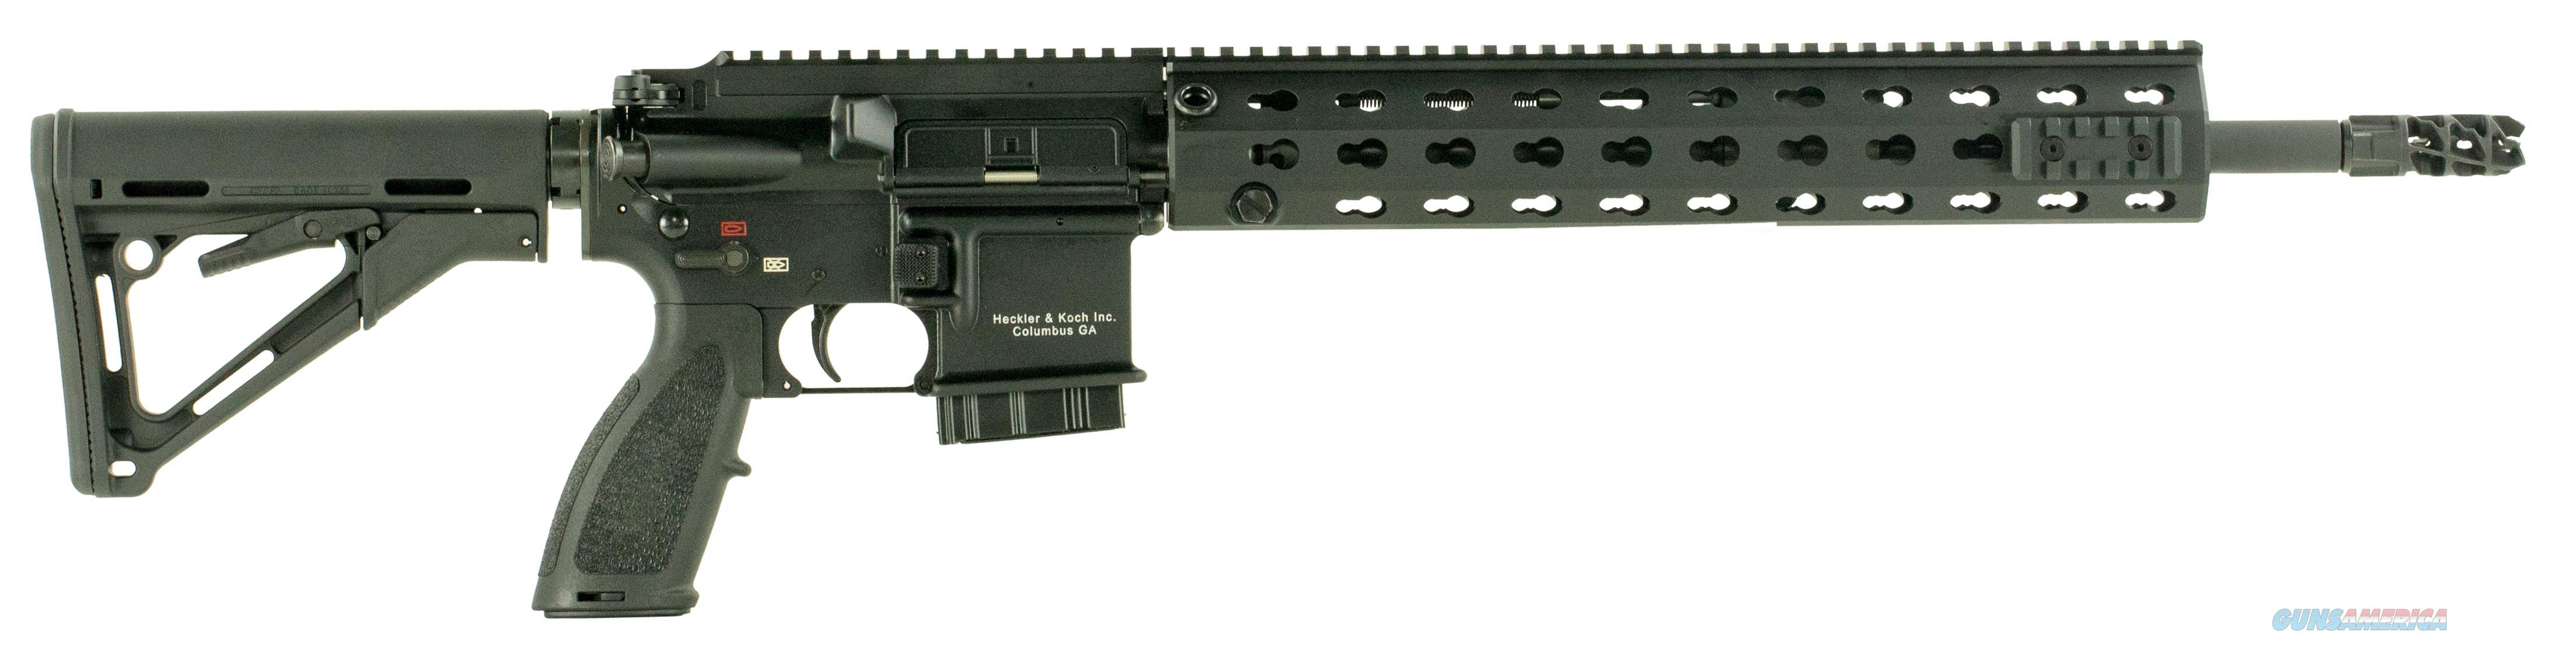 "Heckler & Koch Cr556lca1 Mr556 A1 Competition Semi-Automatic 223 Remington/5.56 Nato 16.5"" Mb 10+1 Or Magpul Ctr Black Stock Black CR556LCA1  Guns > Rifles > H Misc Rifles"